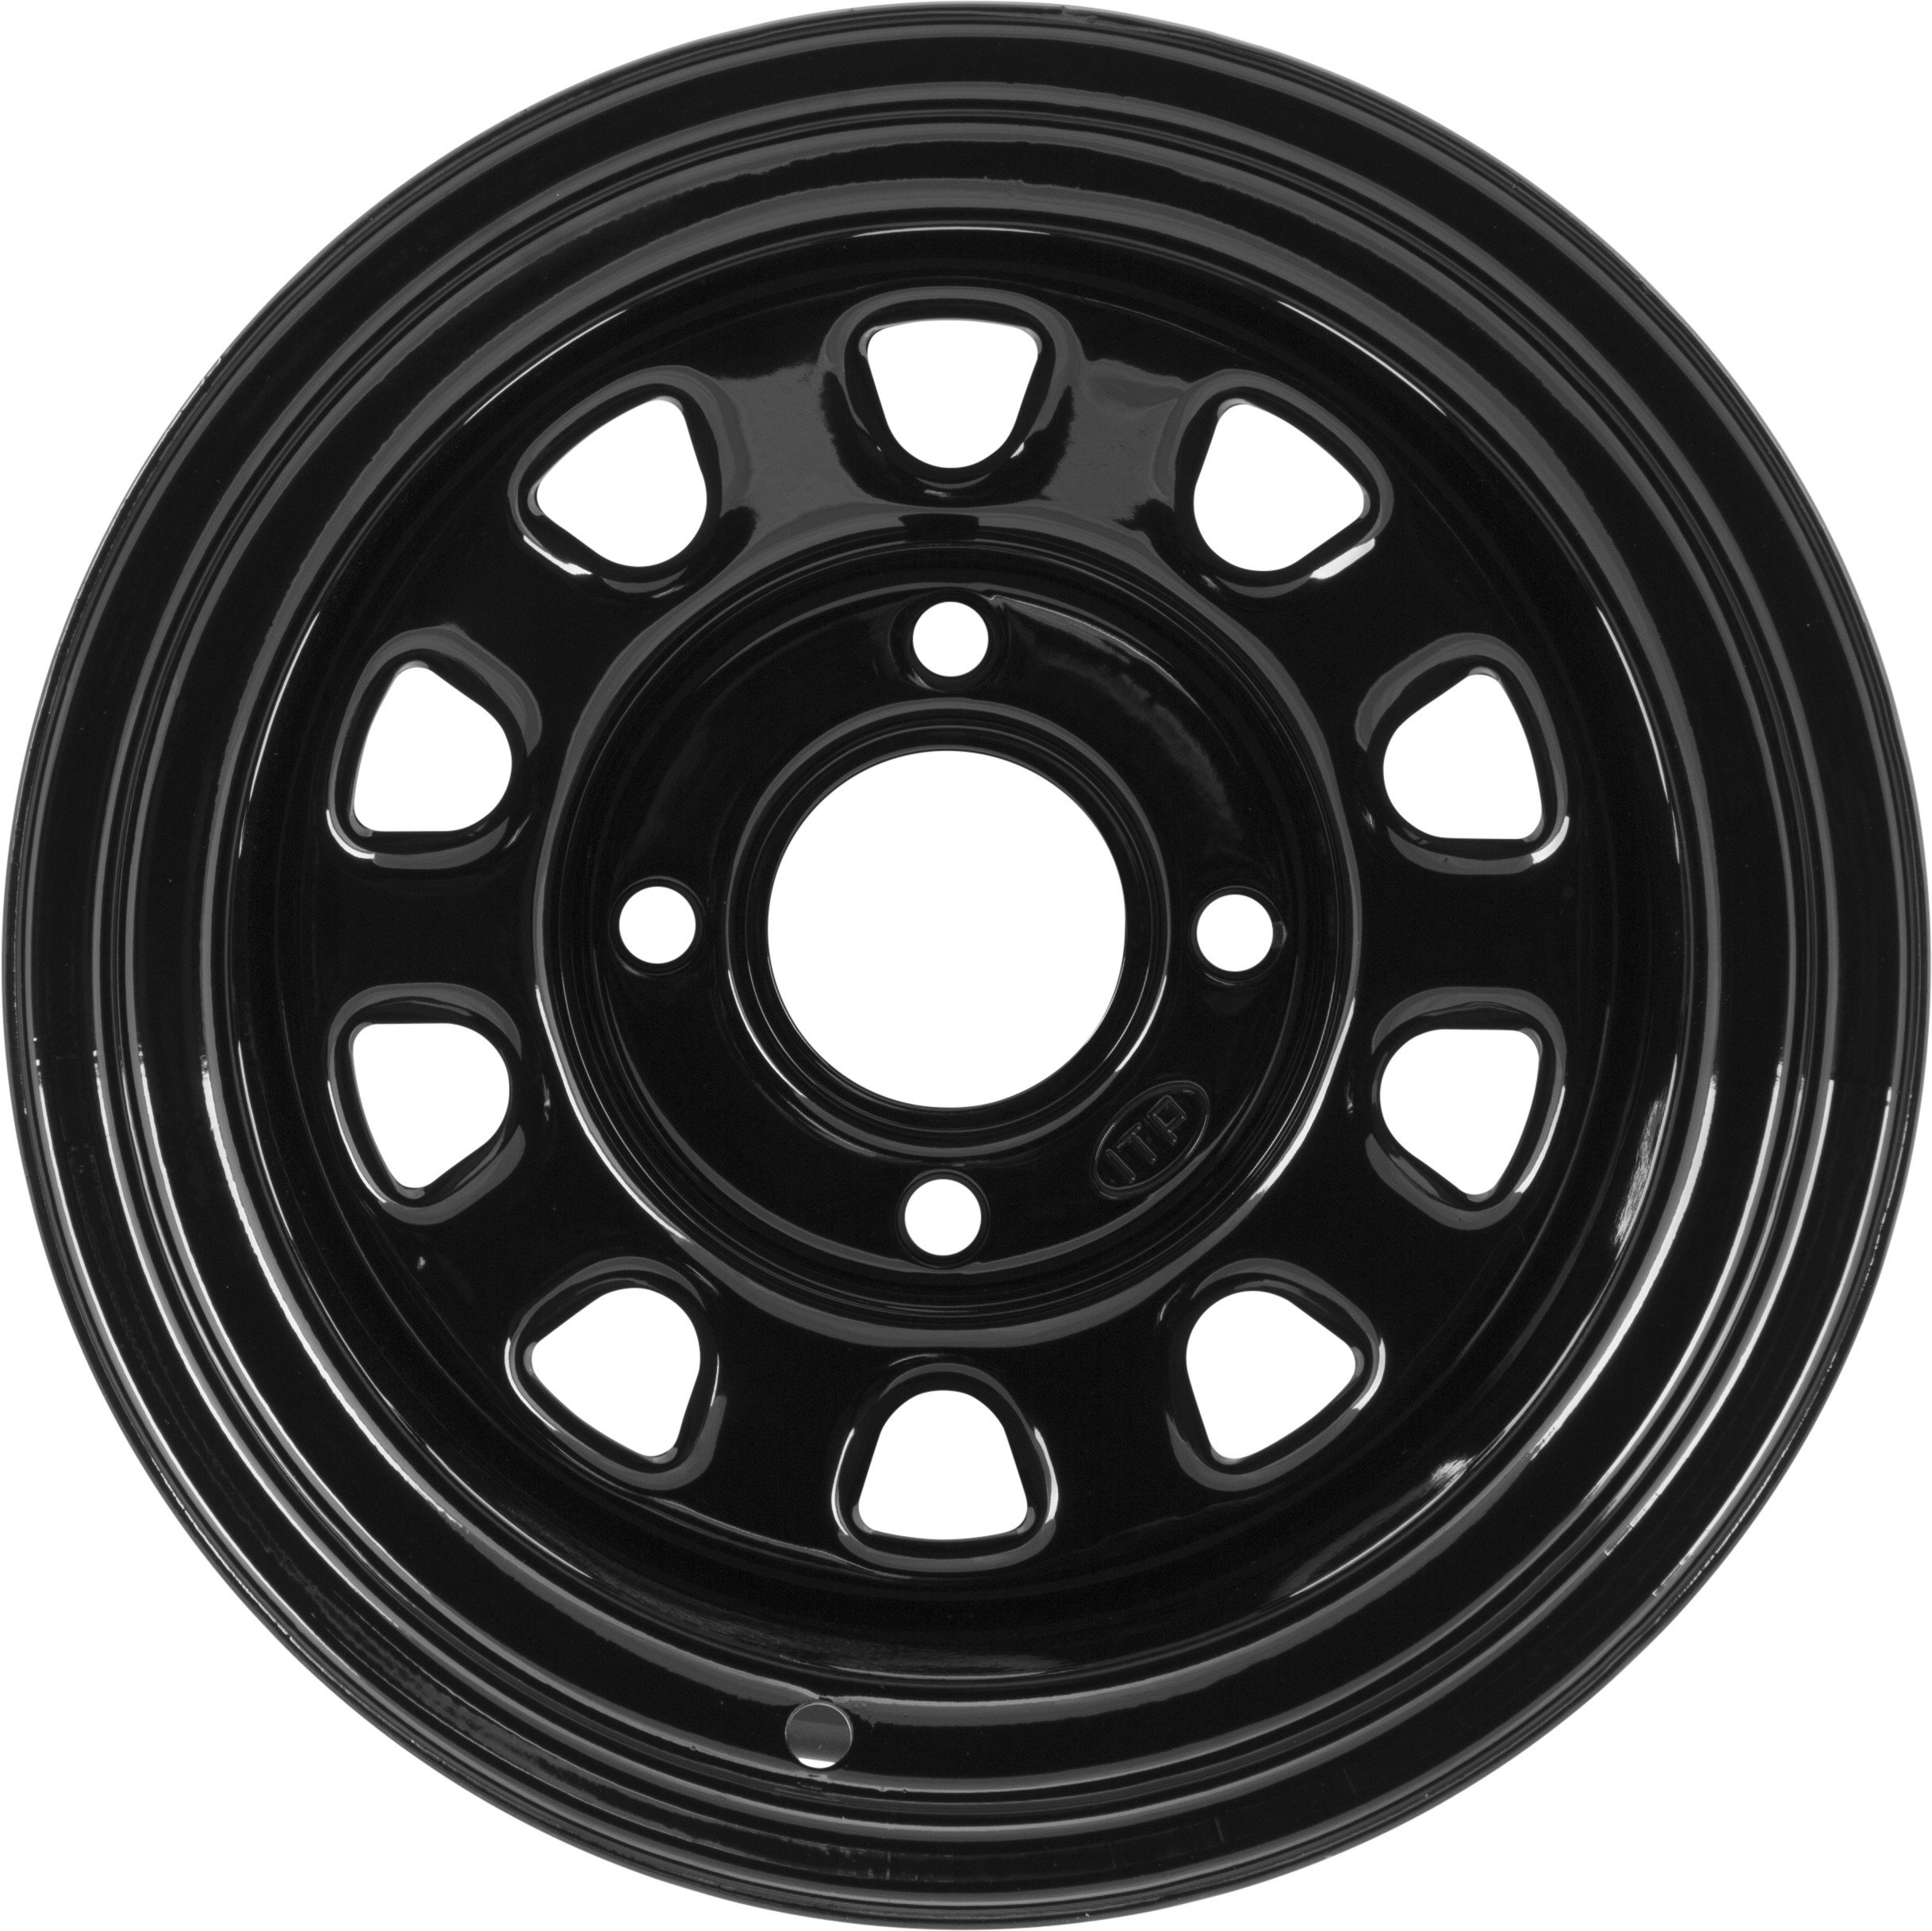 ITP Delta Steel Black Wheel with Machined Finish (12x7''/4x4mm)